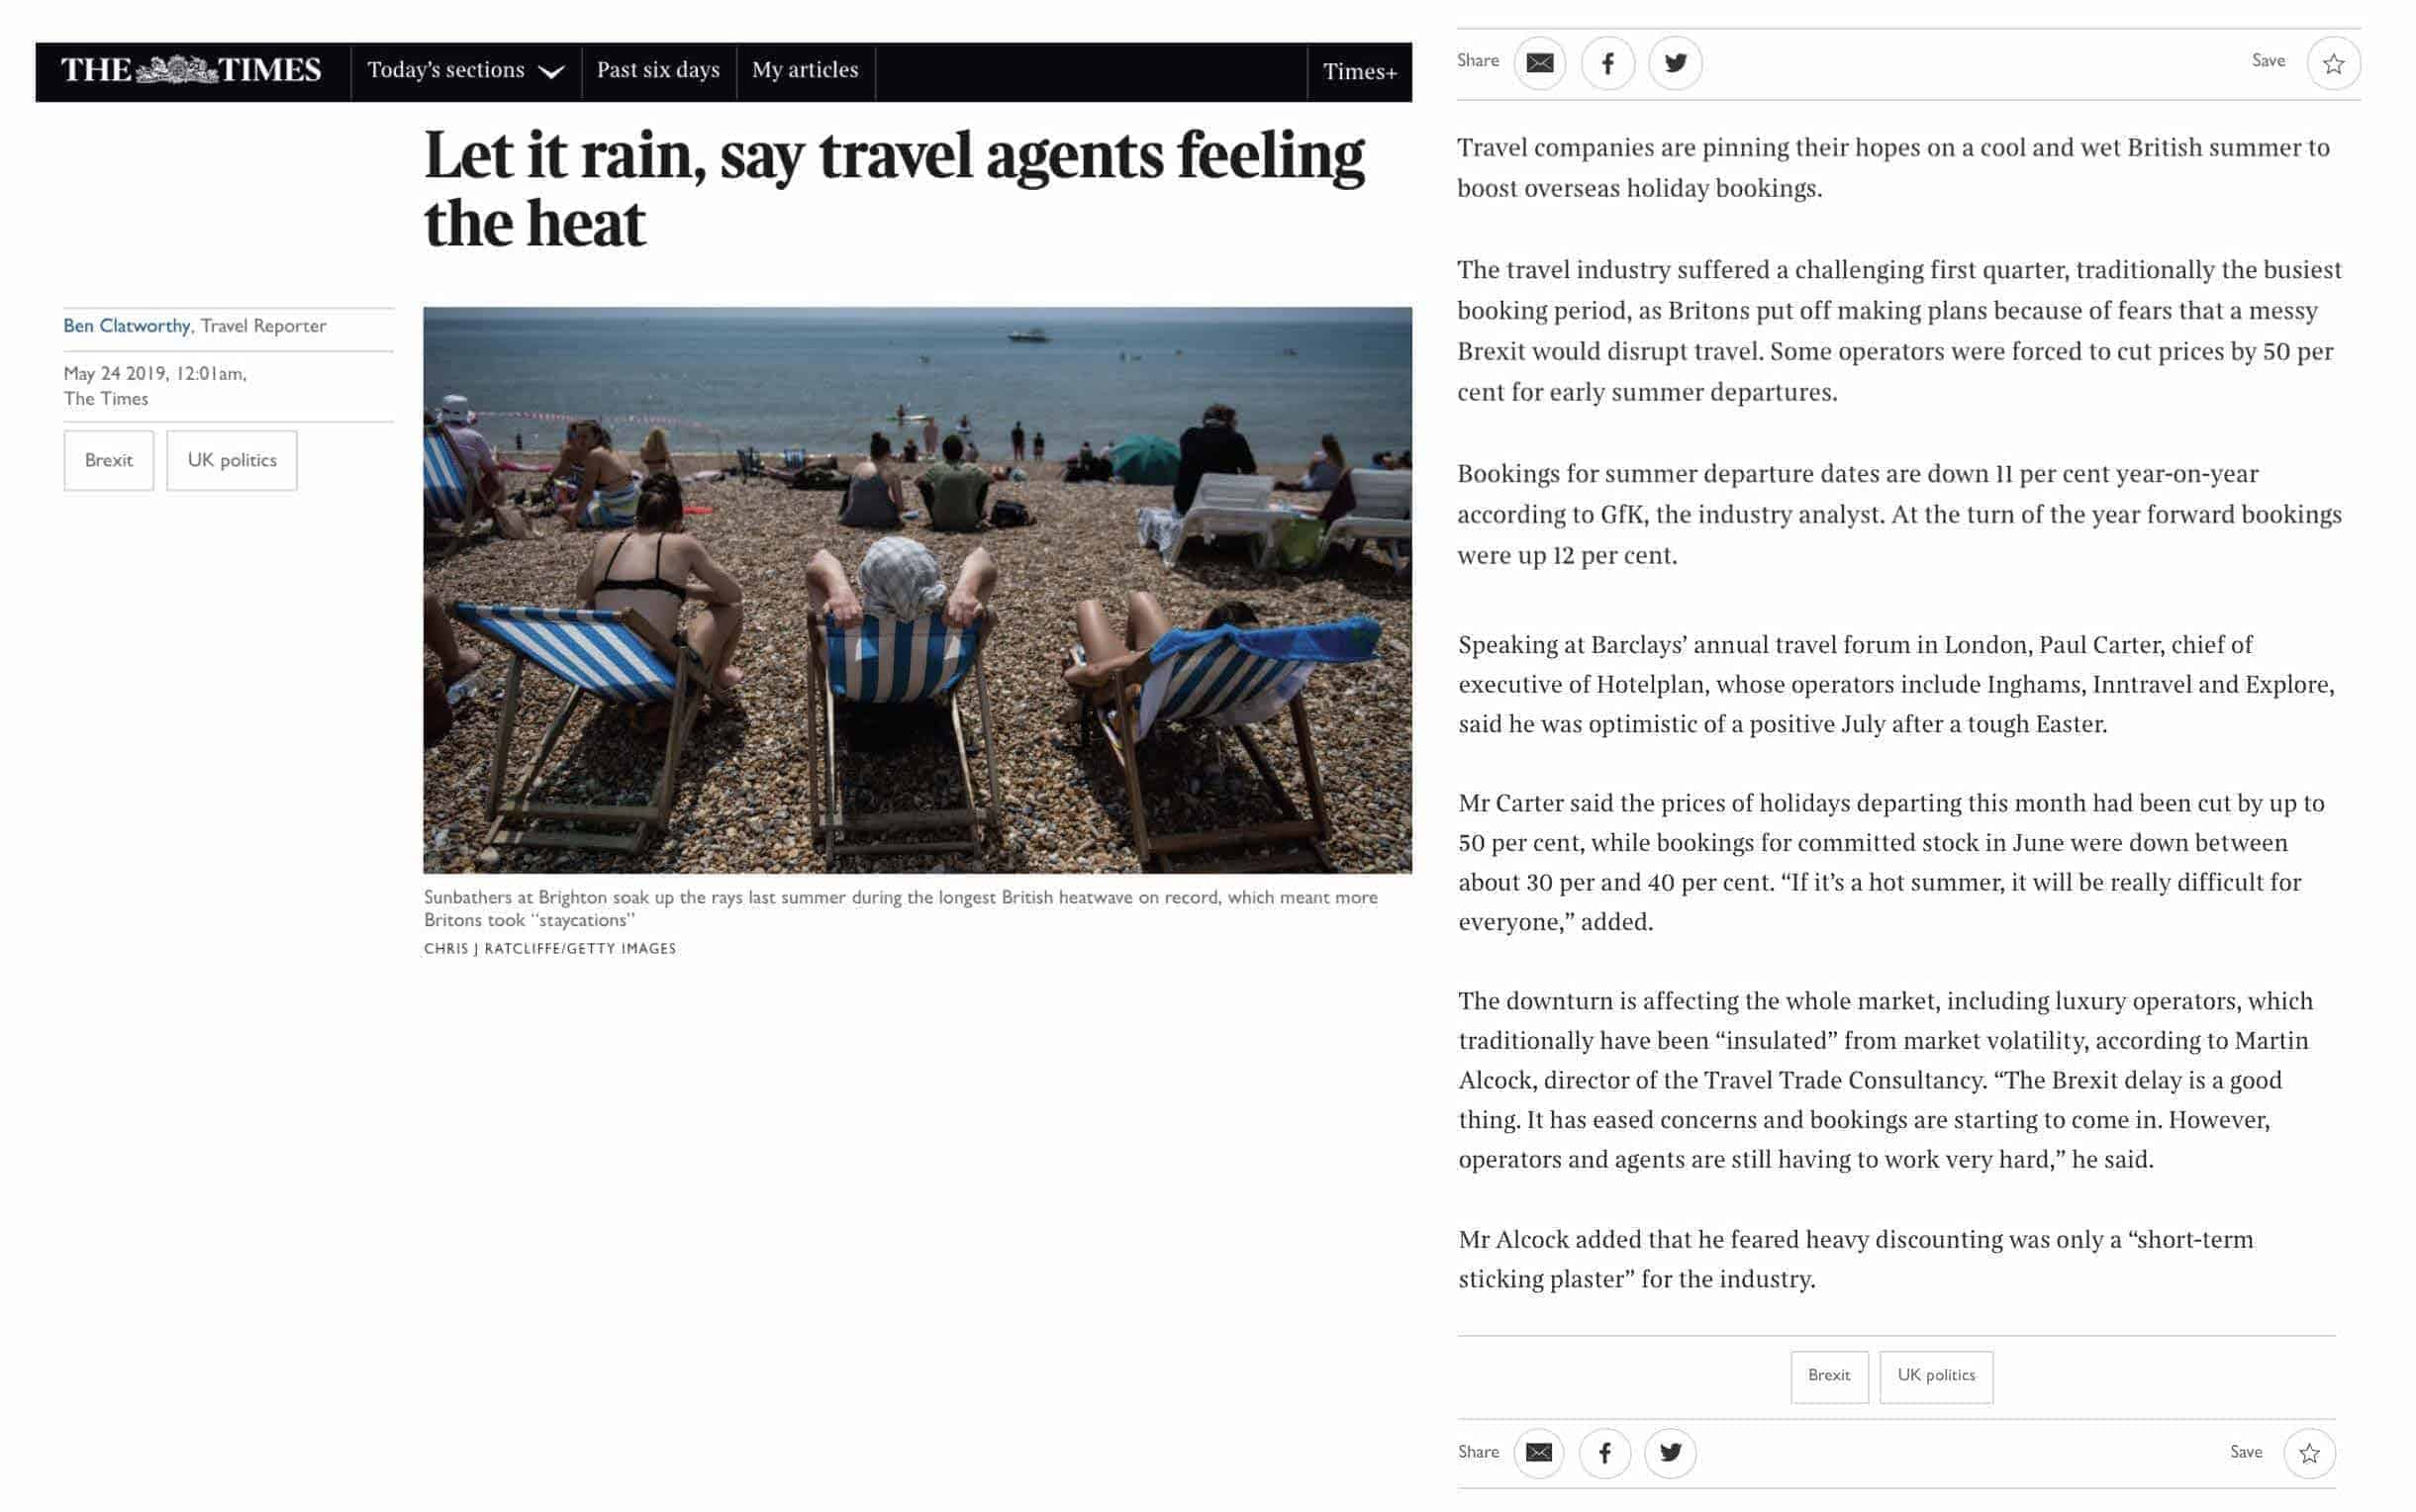 In the news: Travel Trade Consultancy featured in The Times